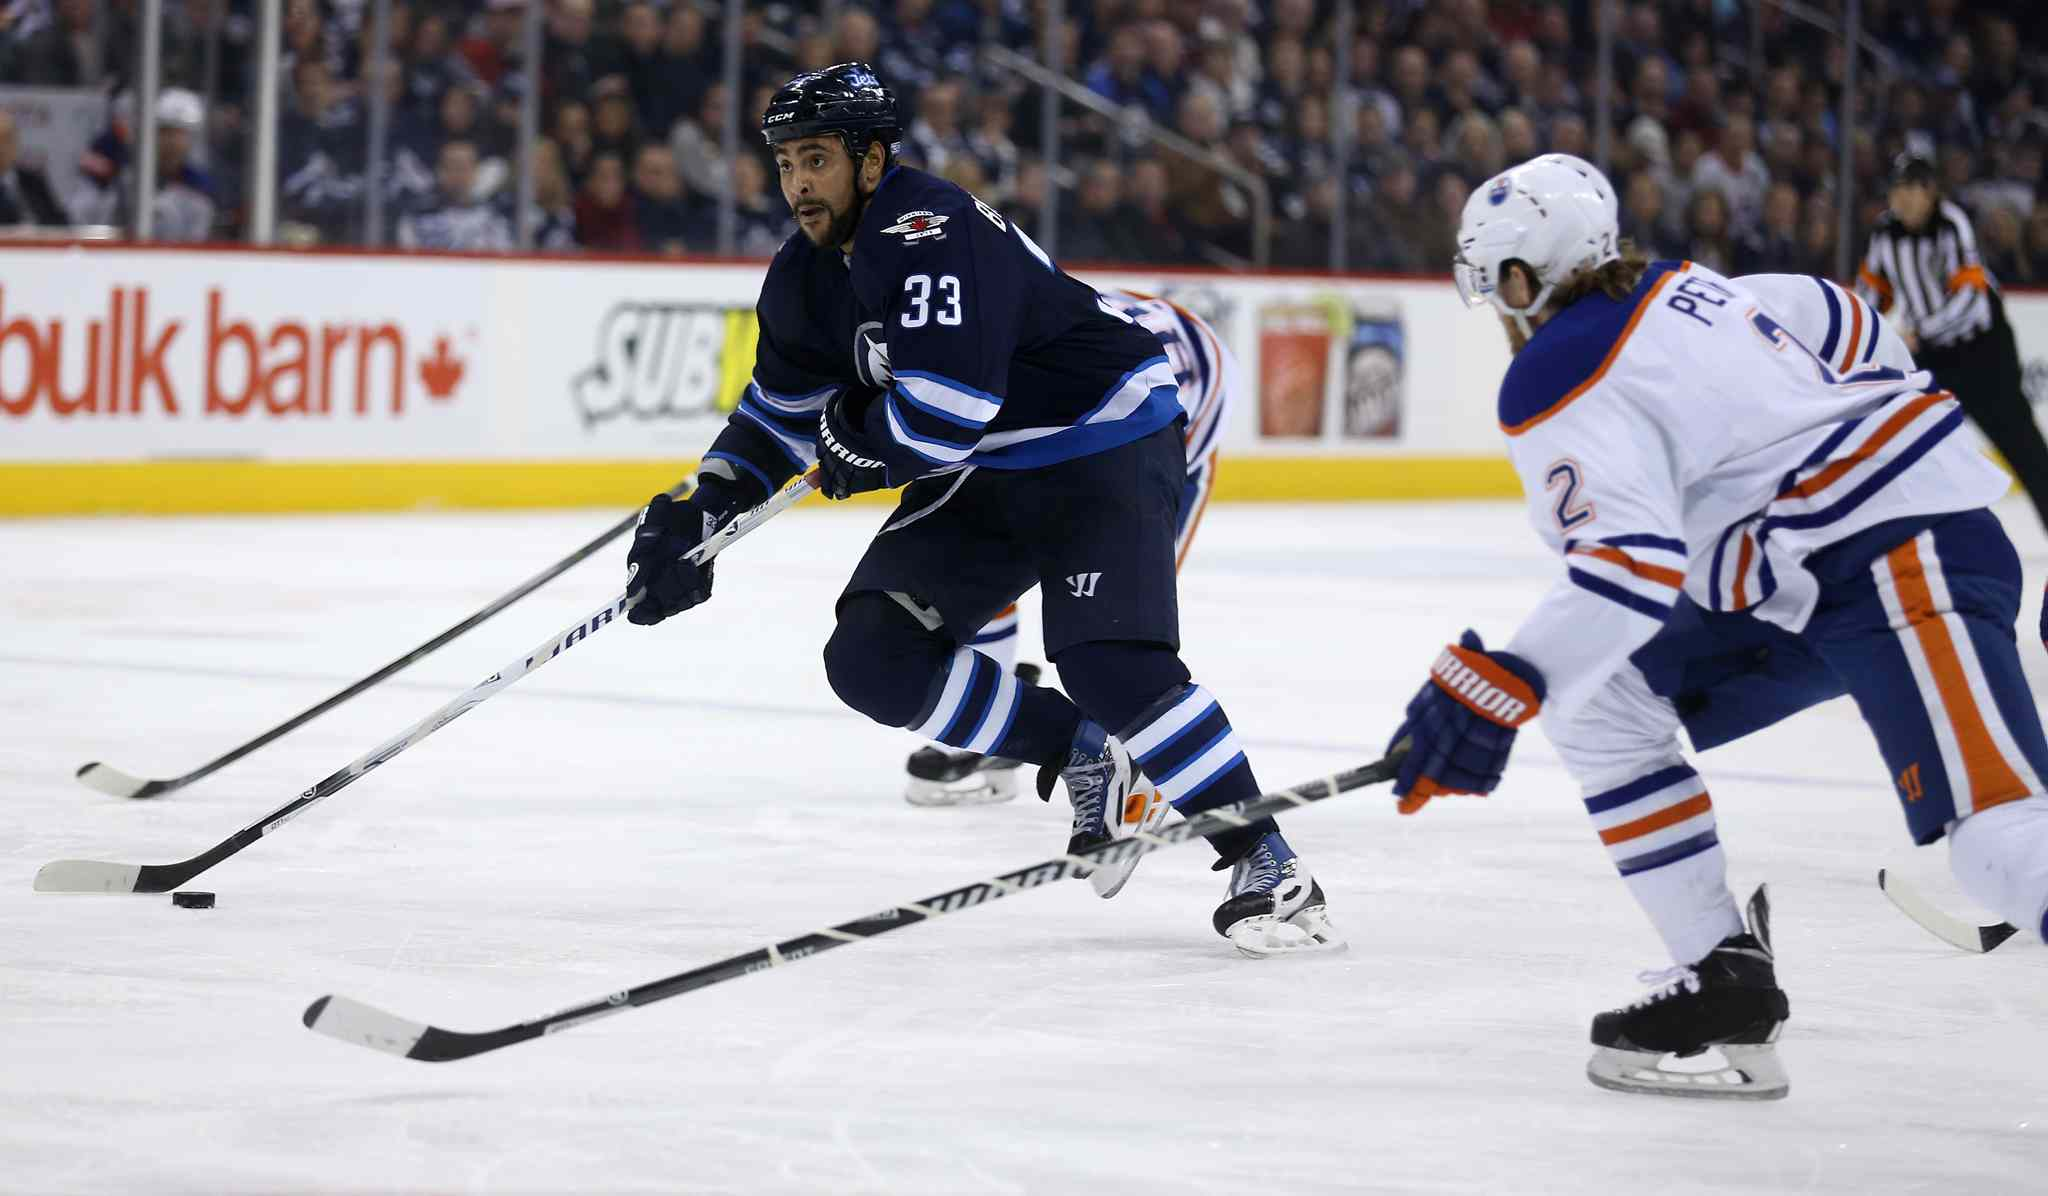 Winnipeg Jets' Dustin Byfuglien (33) drives to the net past Edmonton Oilers' Jeff Petry (2) during second period NHL hockey action at MTS Centre in Winnipeg on Saturday.